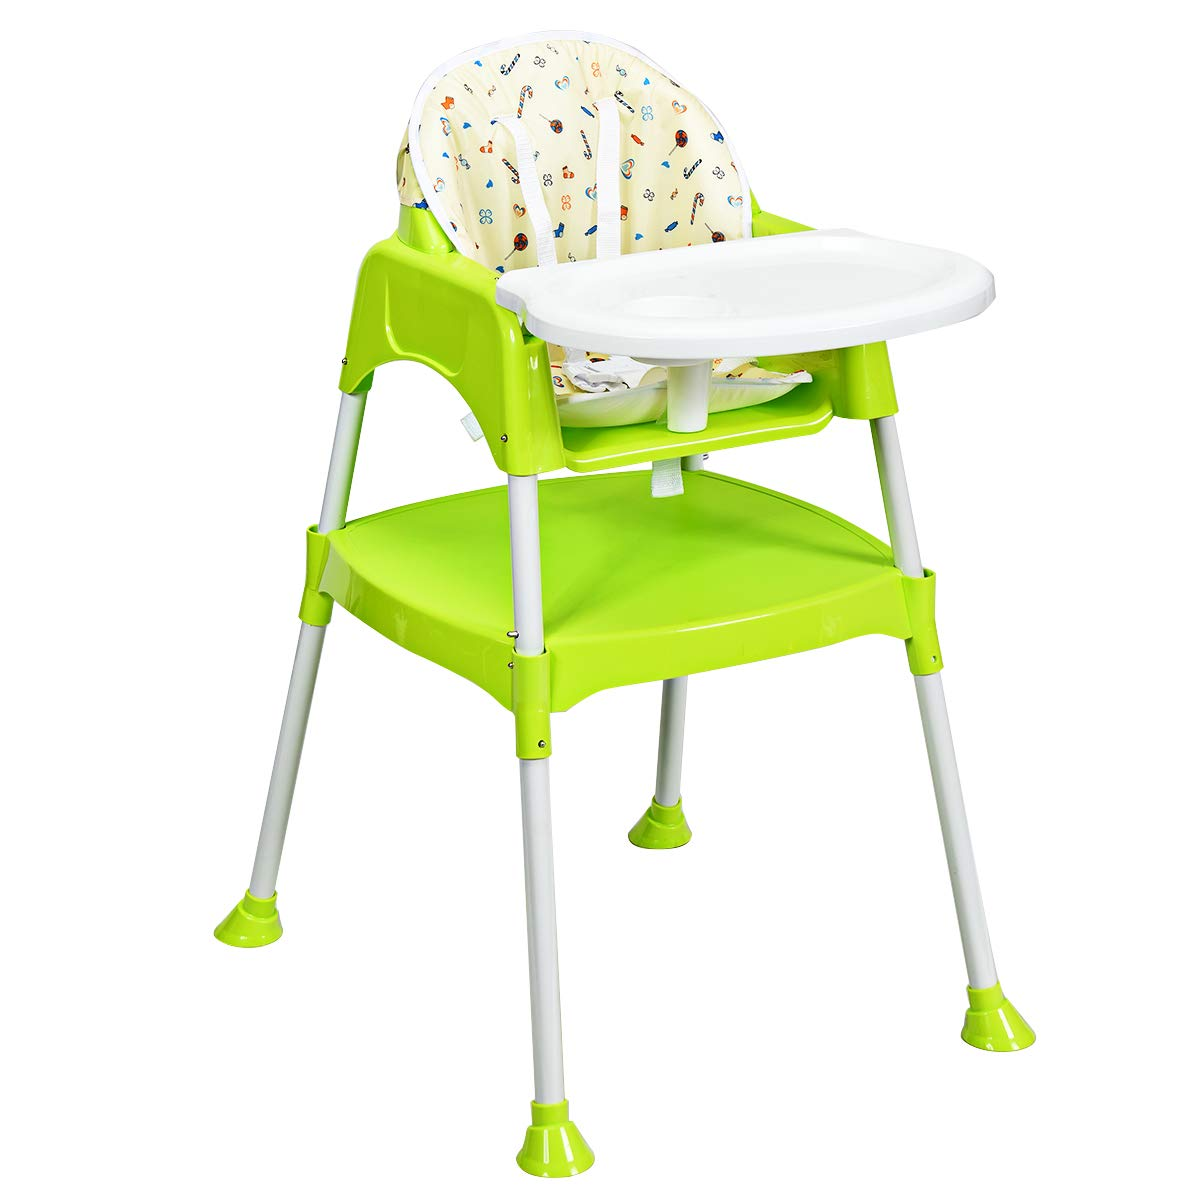 Costzon Convertible High Chair, 4 in 1 Table and Chair Set, Snacker High Chair Seat, Toddler Booster Furniture, Baby Feeding with Tray & Cup Holder (Green) by Costzon